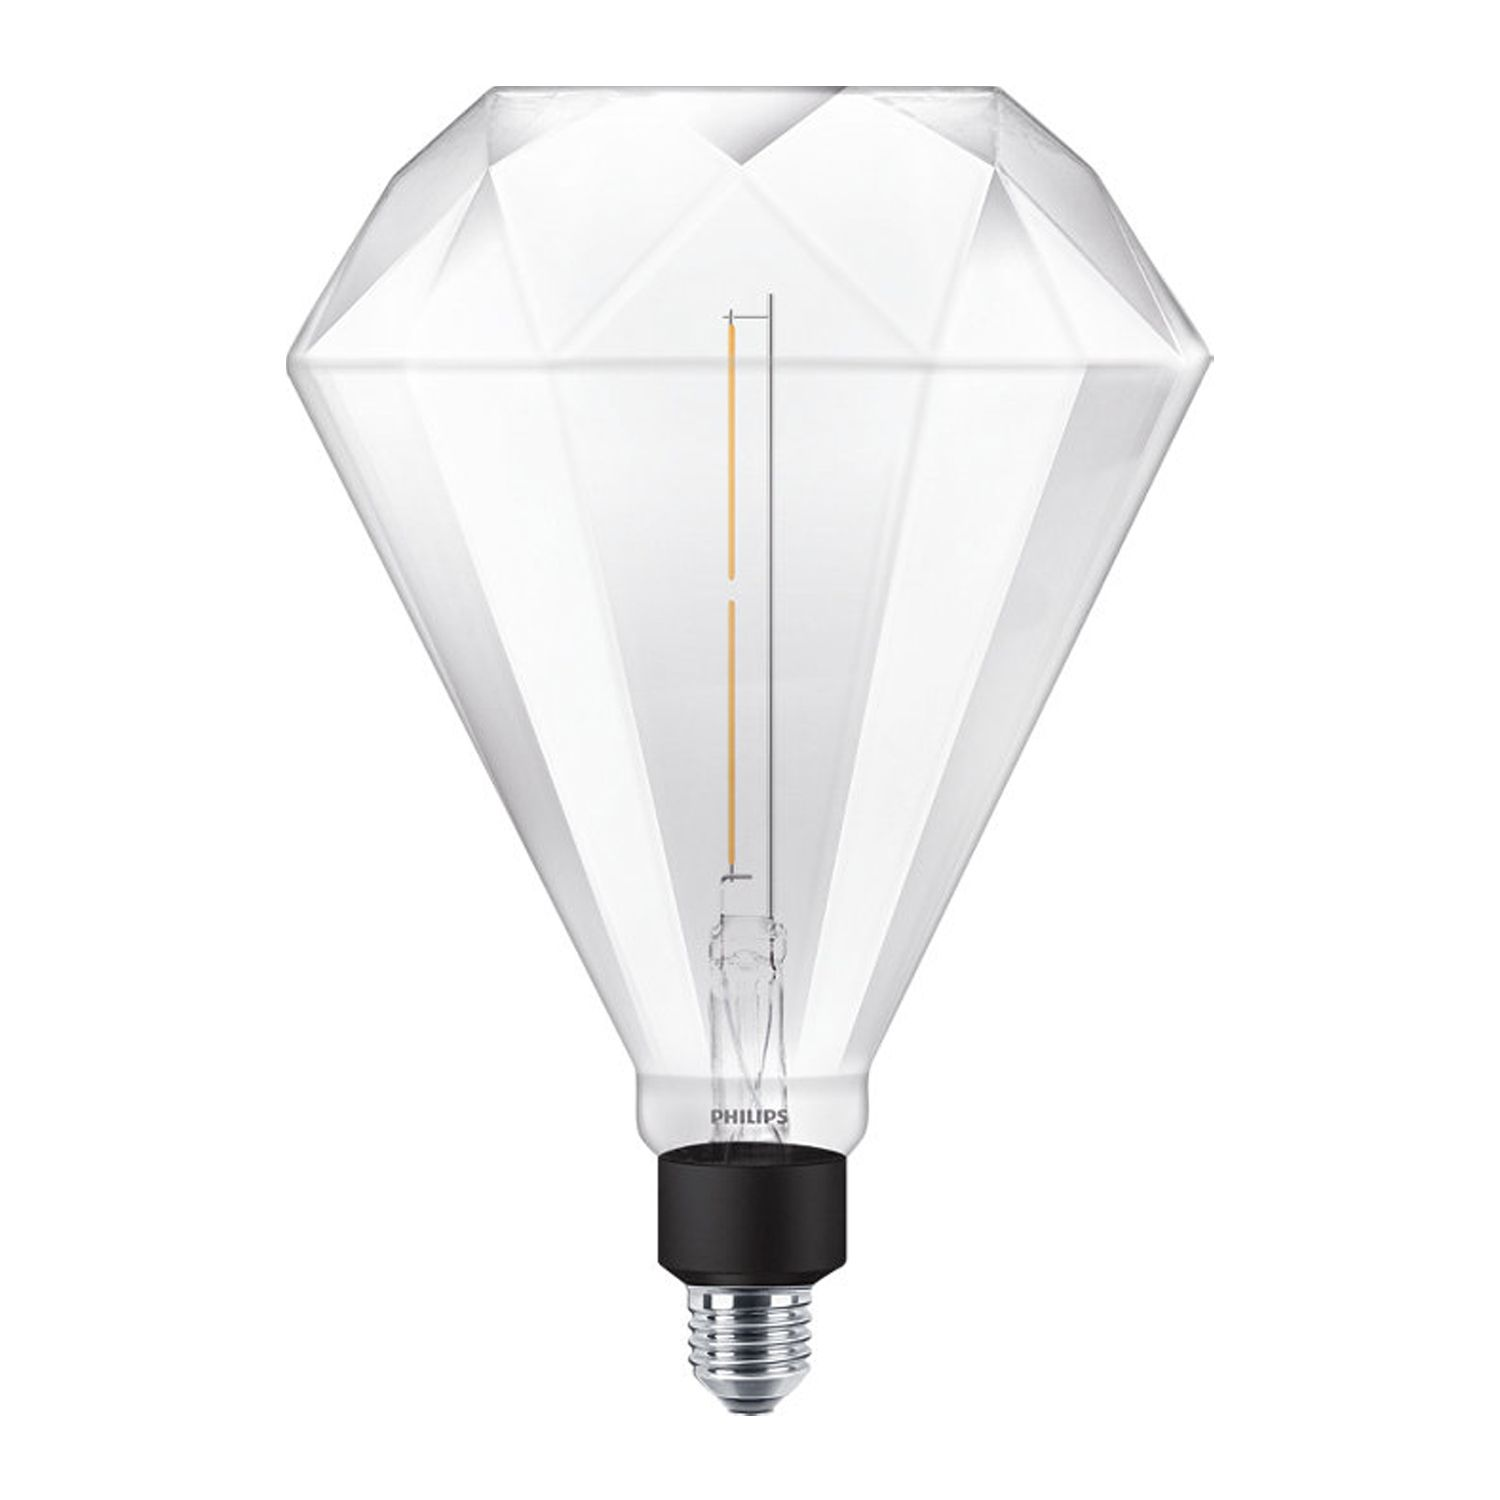 Philips LED Diamond Giant E27 4W 830 | Warm White - Dimmable - Replaces 35W